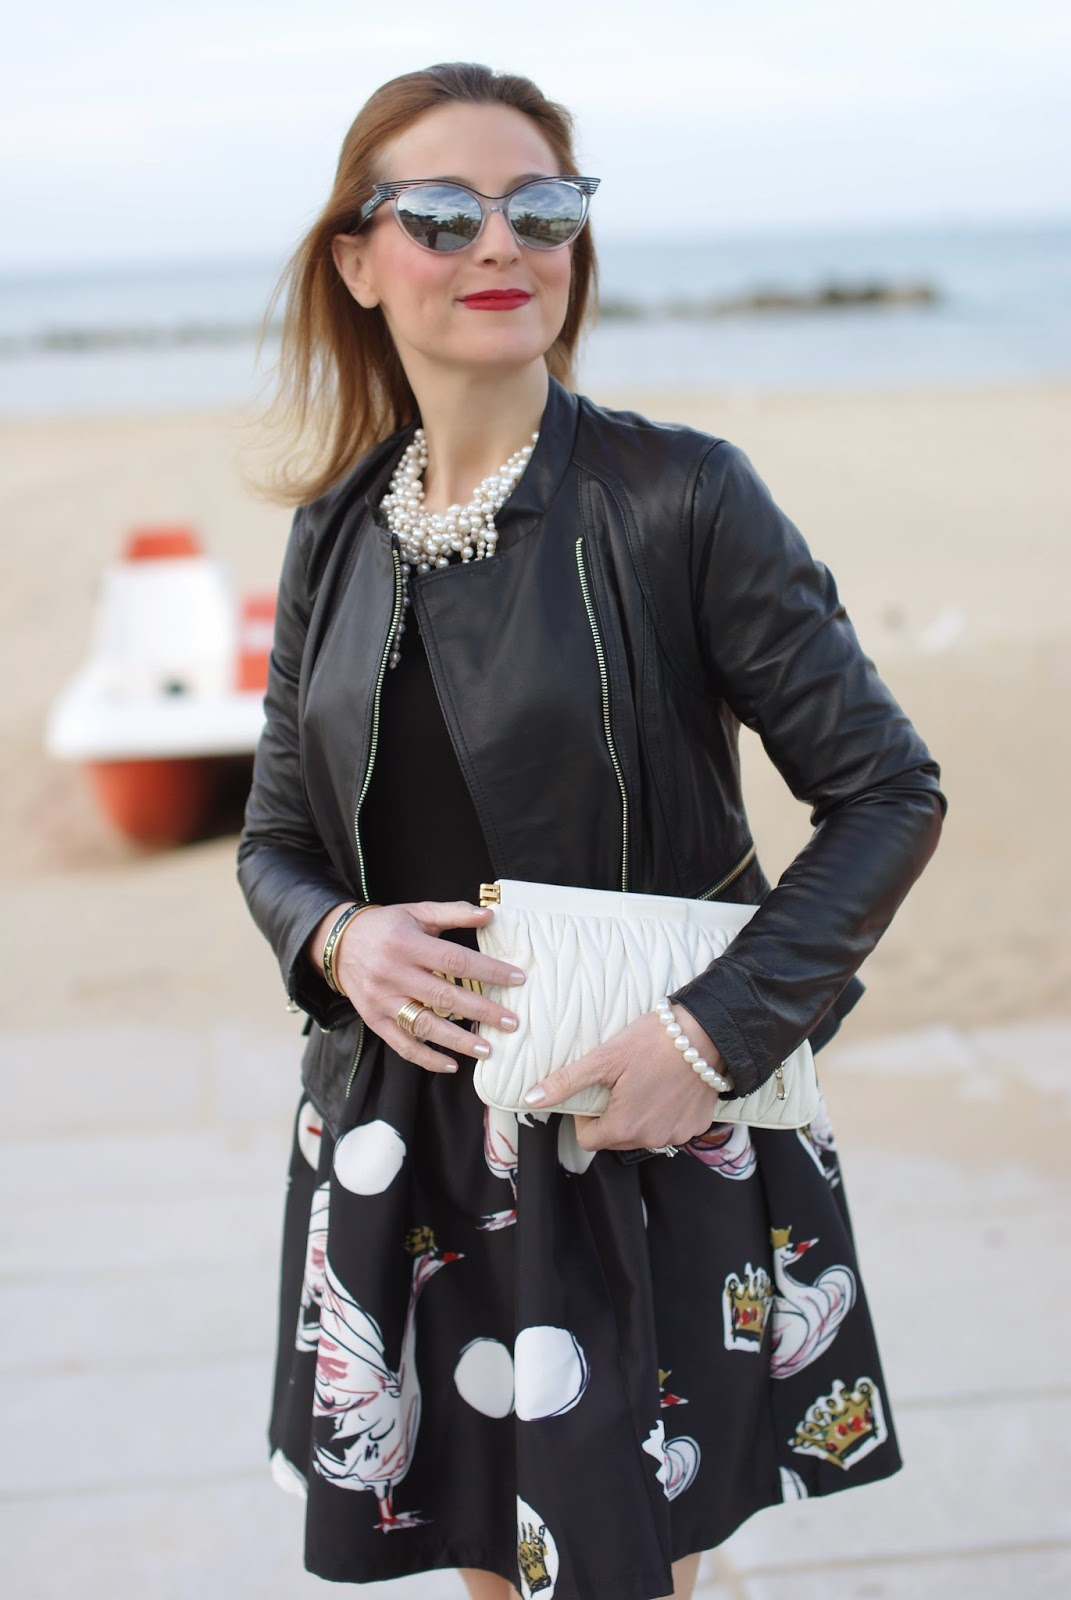 Miu Miu white quilted clutch, black leather jacket and Zara pearl necklace on Fashion and Cookies fashion blog, fashion blogger style